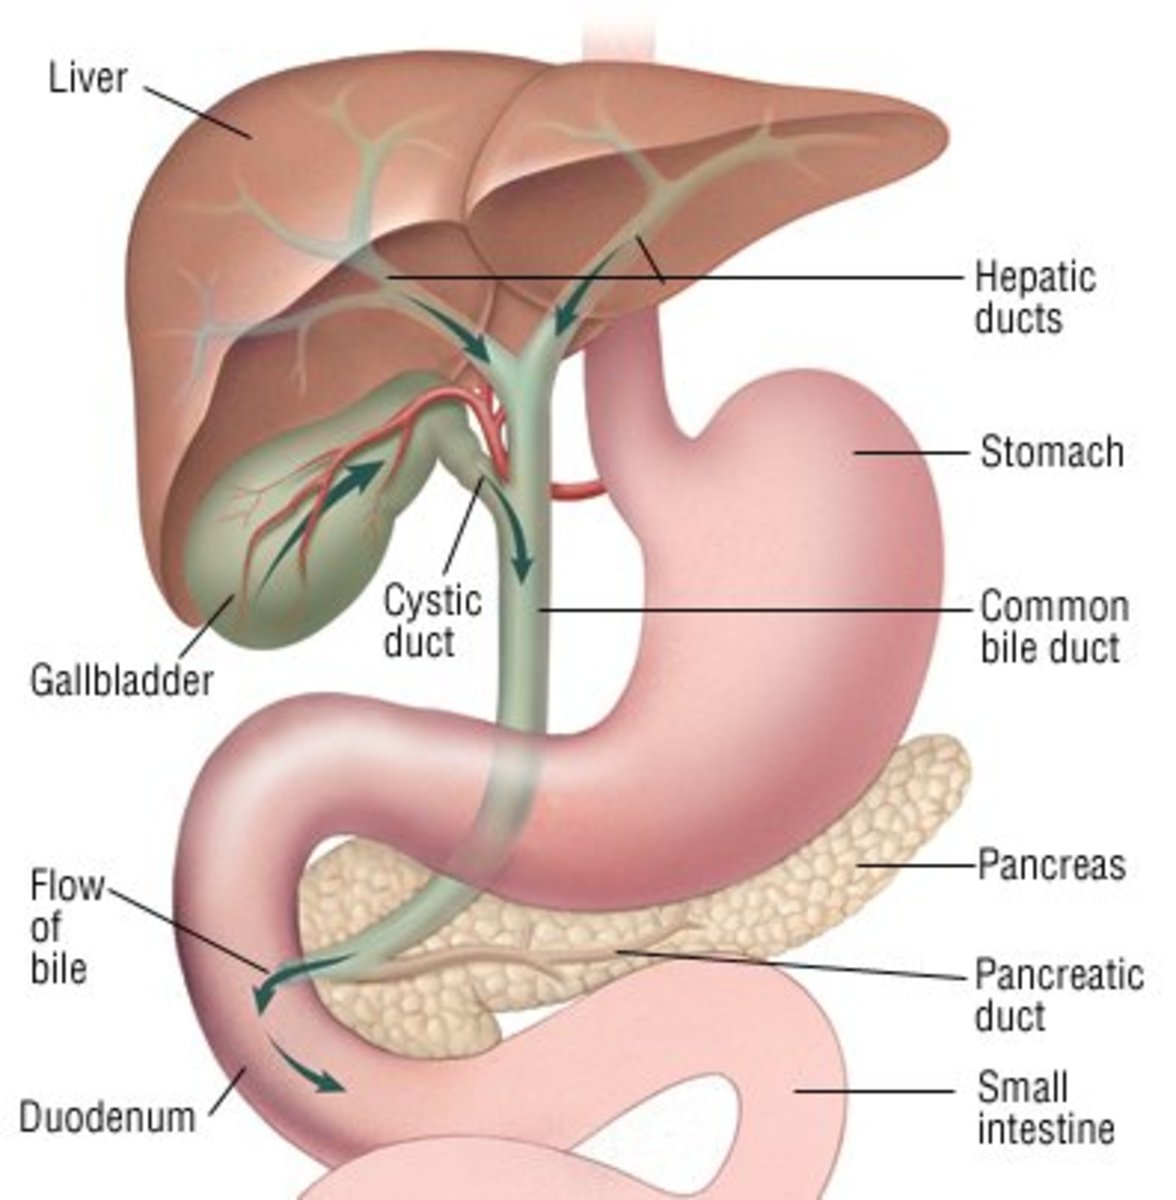 Symptoms and Treatments for Gallbladder Disease and Dysfunction